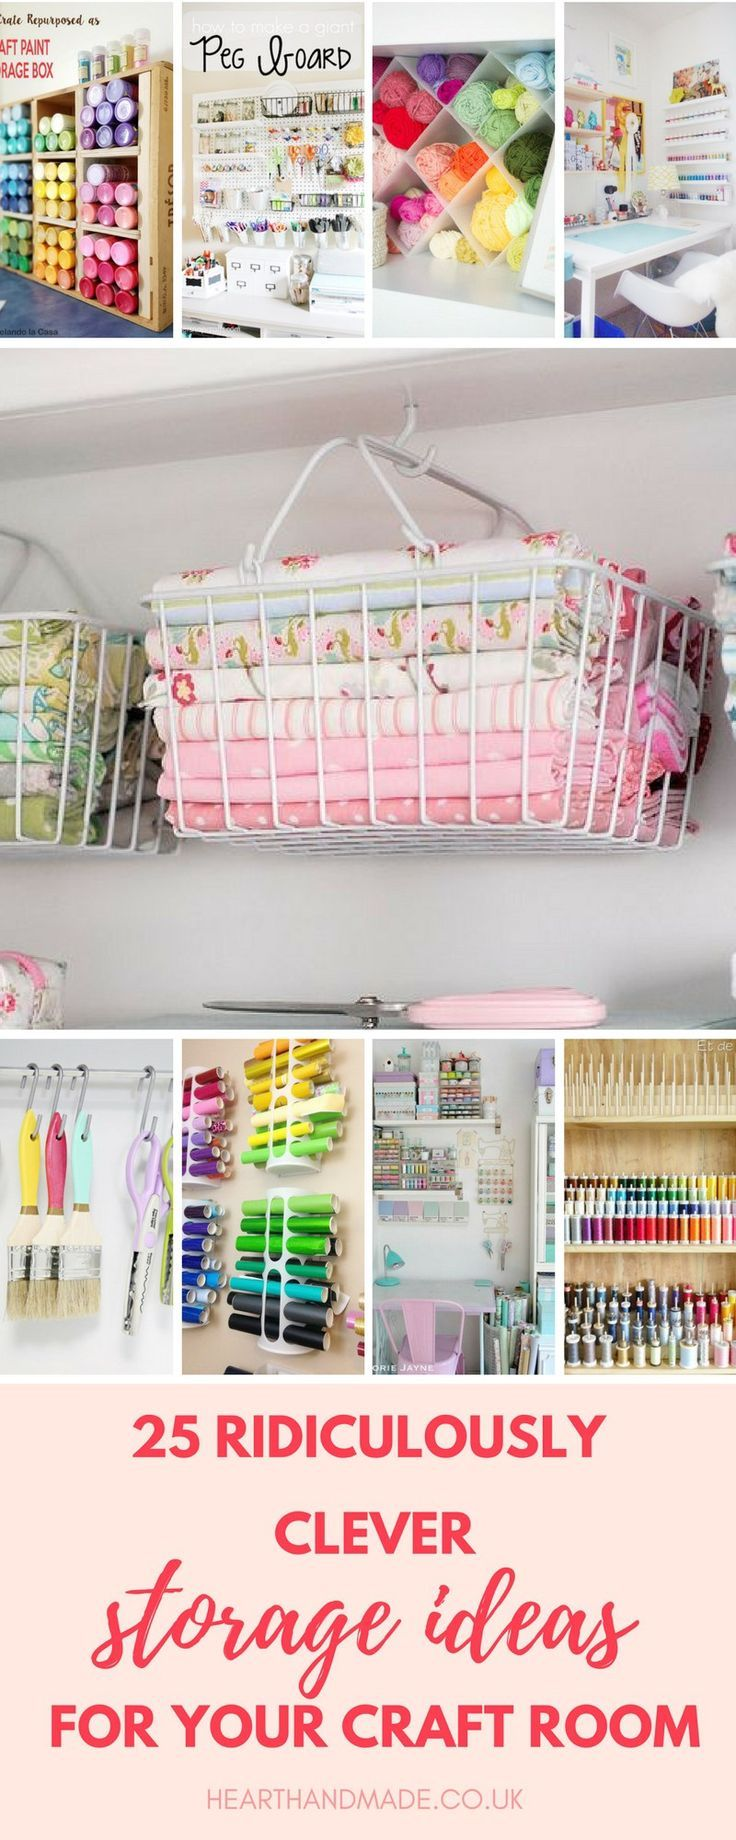 17 Fabulous Creative Storage Solutions For Your Studio | Space ...